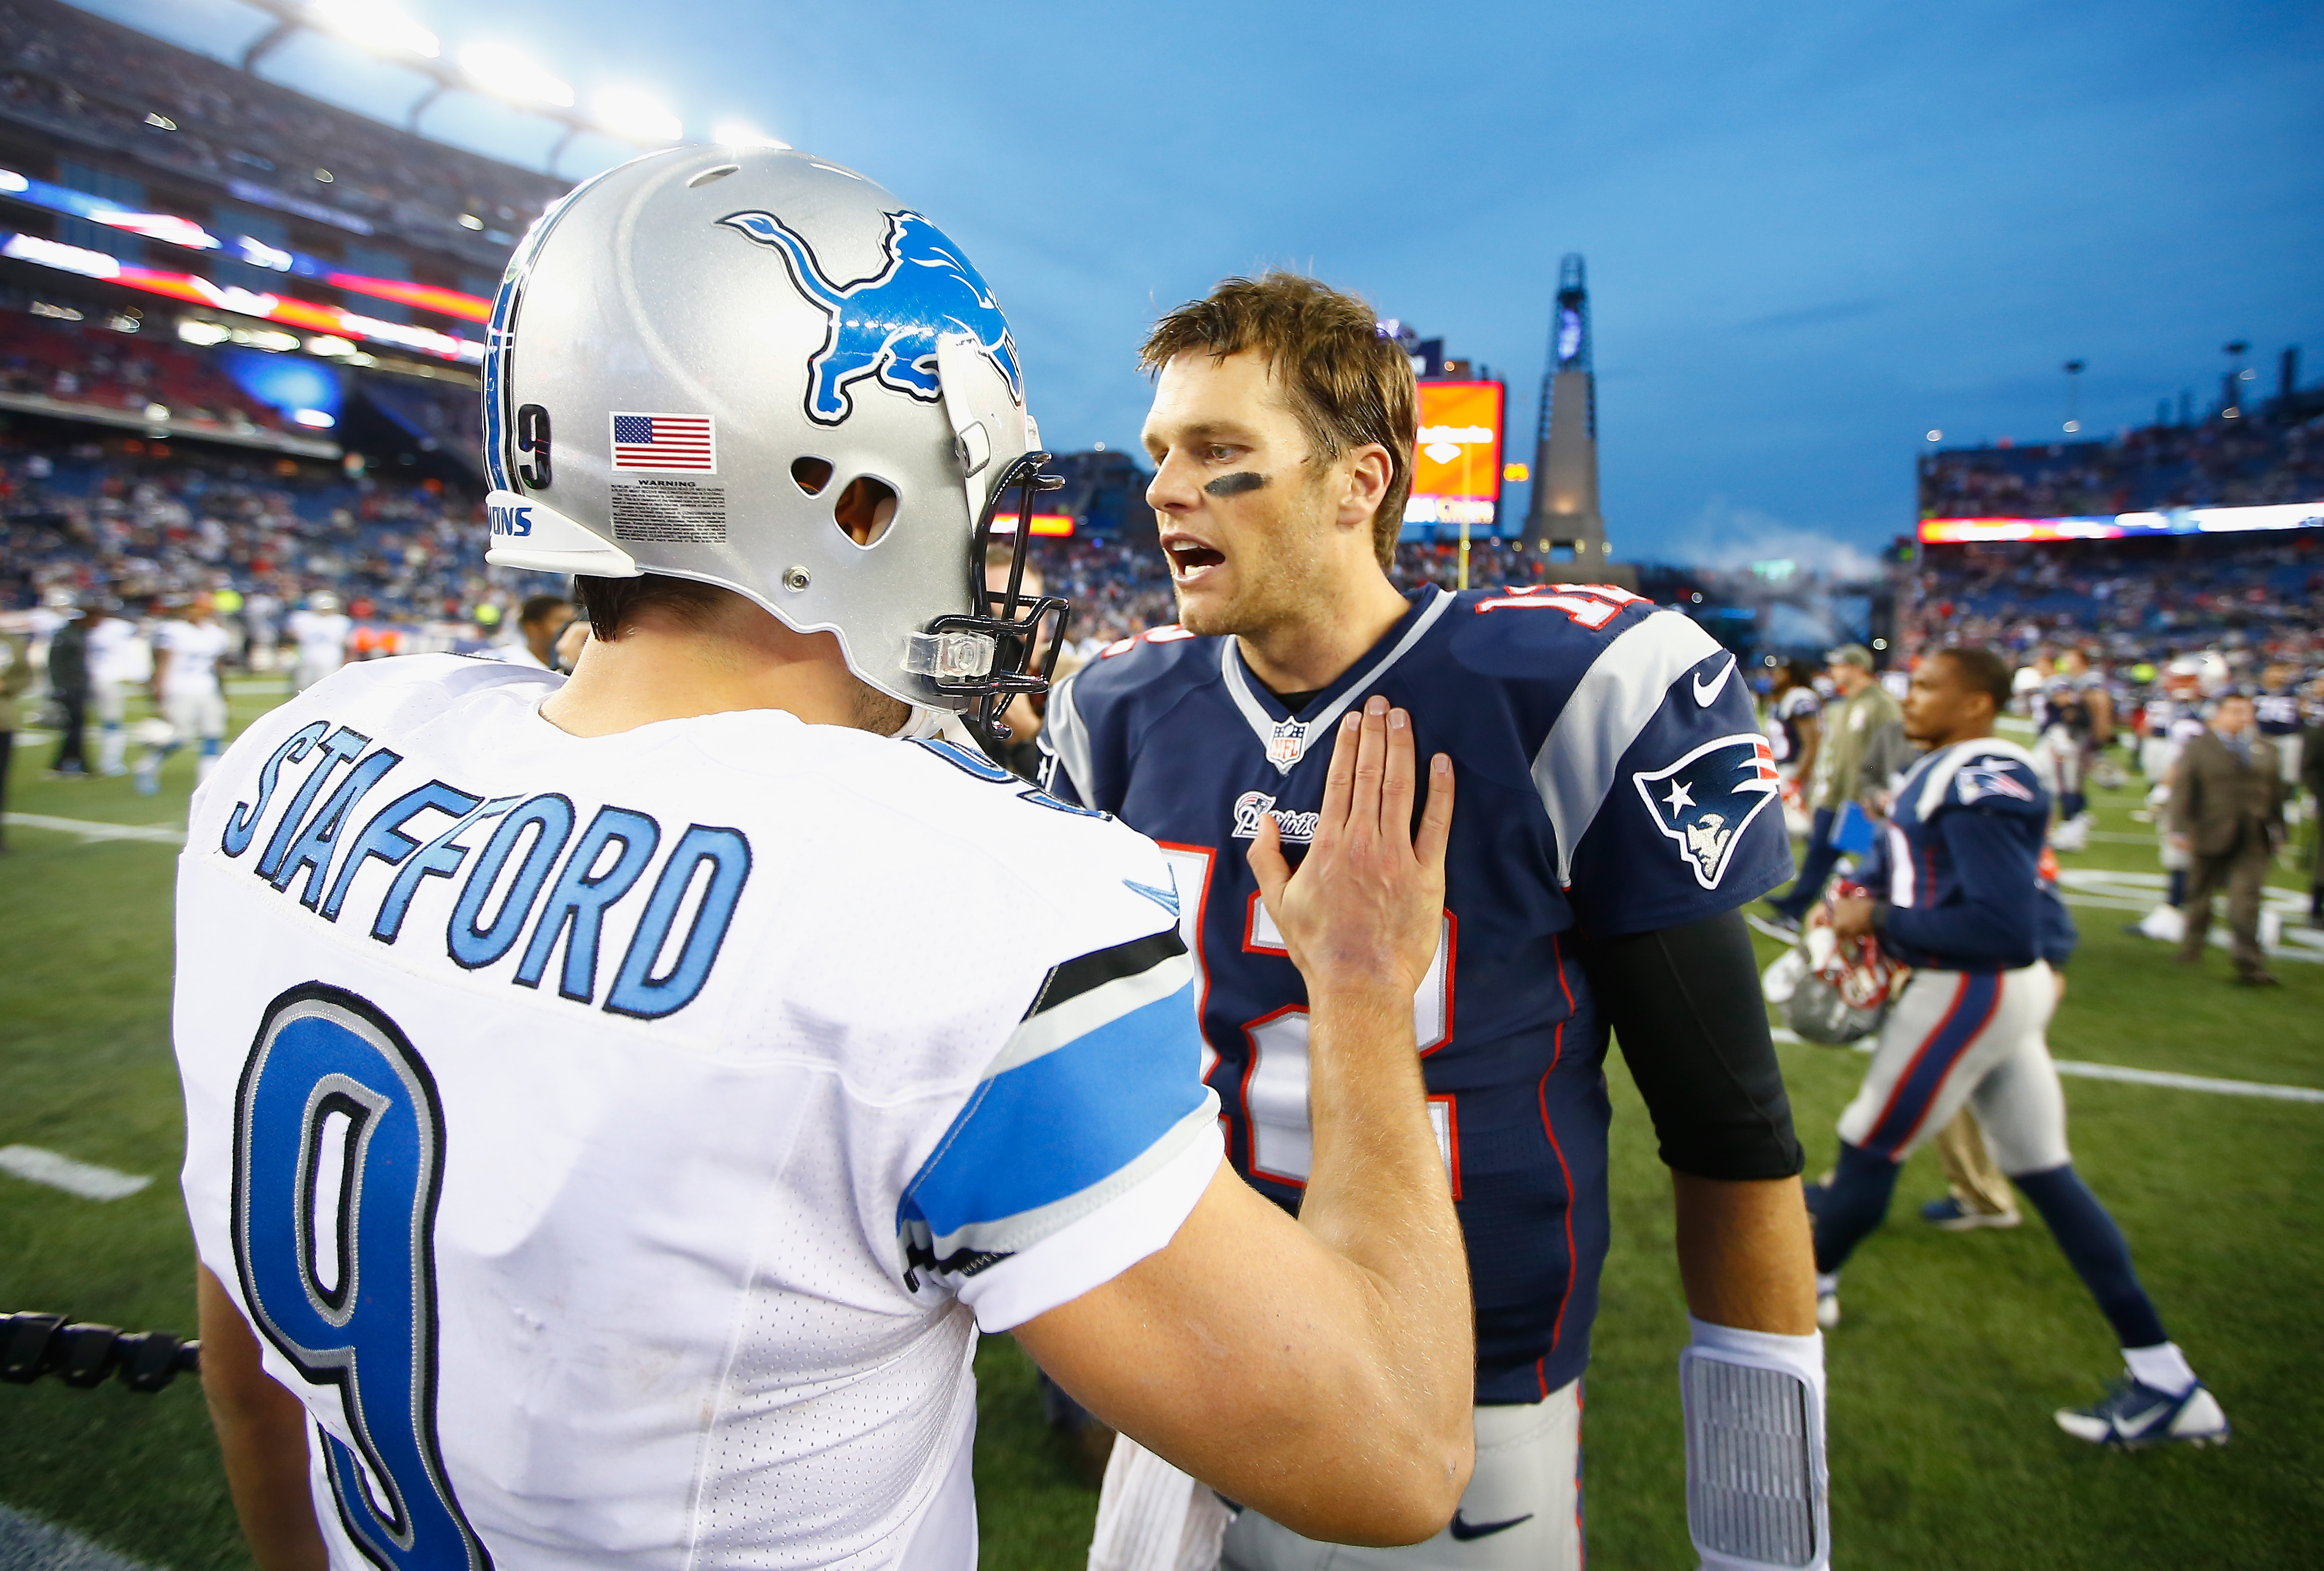 Tom Brady #12 of the New England Patriots shakes hands with Matthew Stafford #9 of the Detroit Lions after a game at Gillette Stadium on November 23, 2014 in Foxboro, Massachusetts.